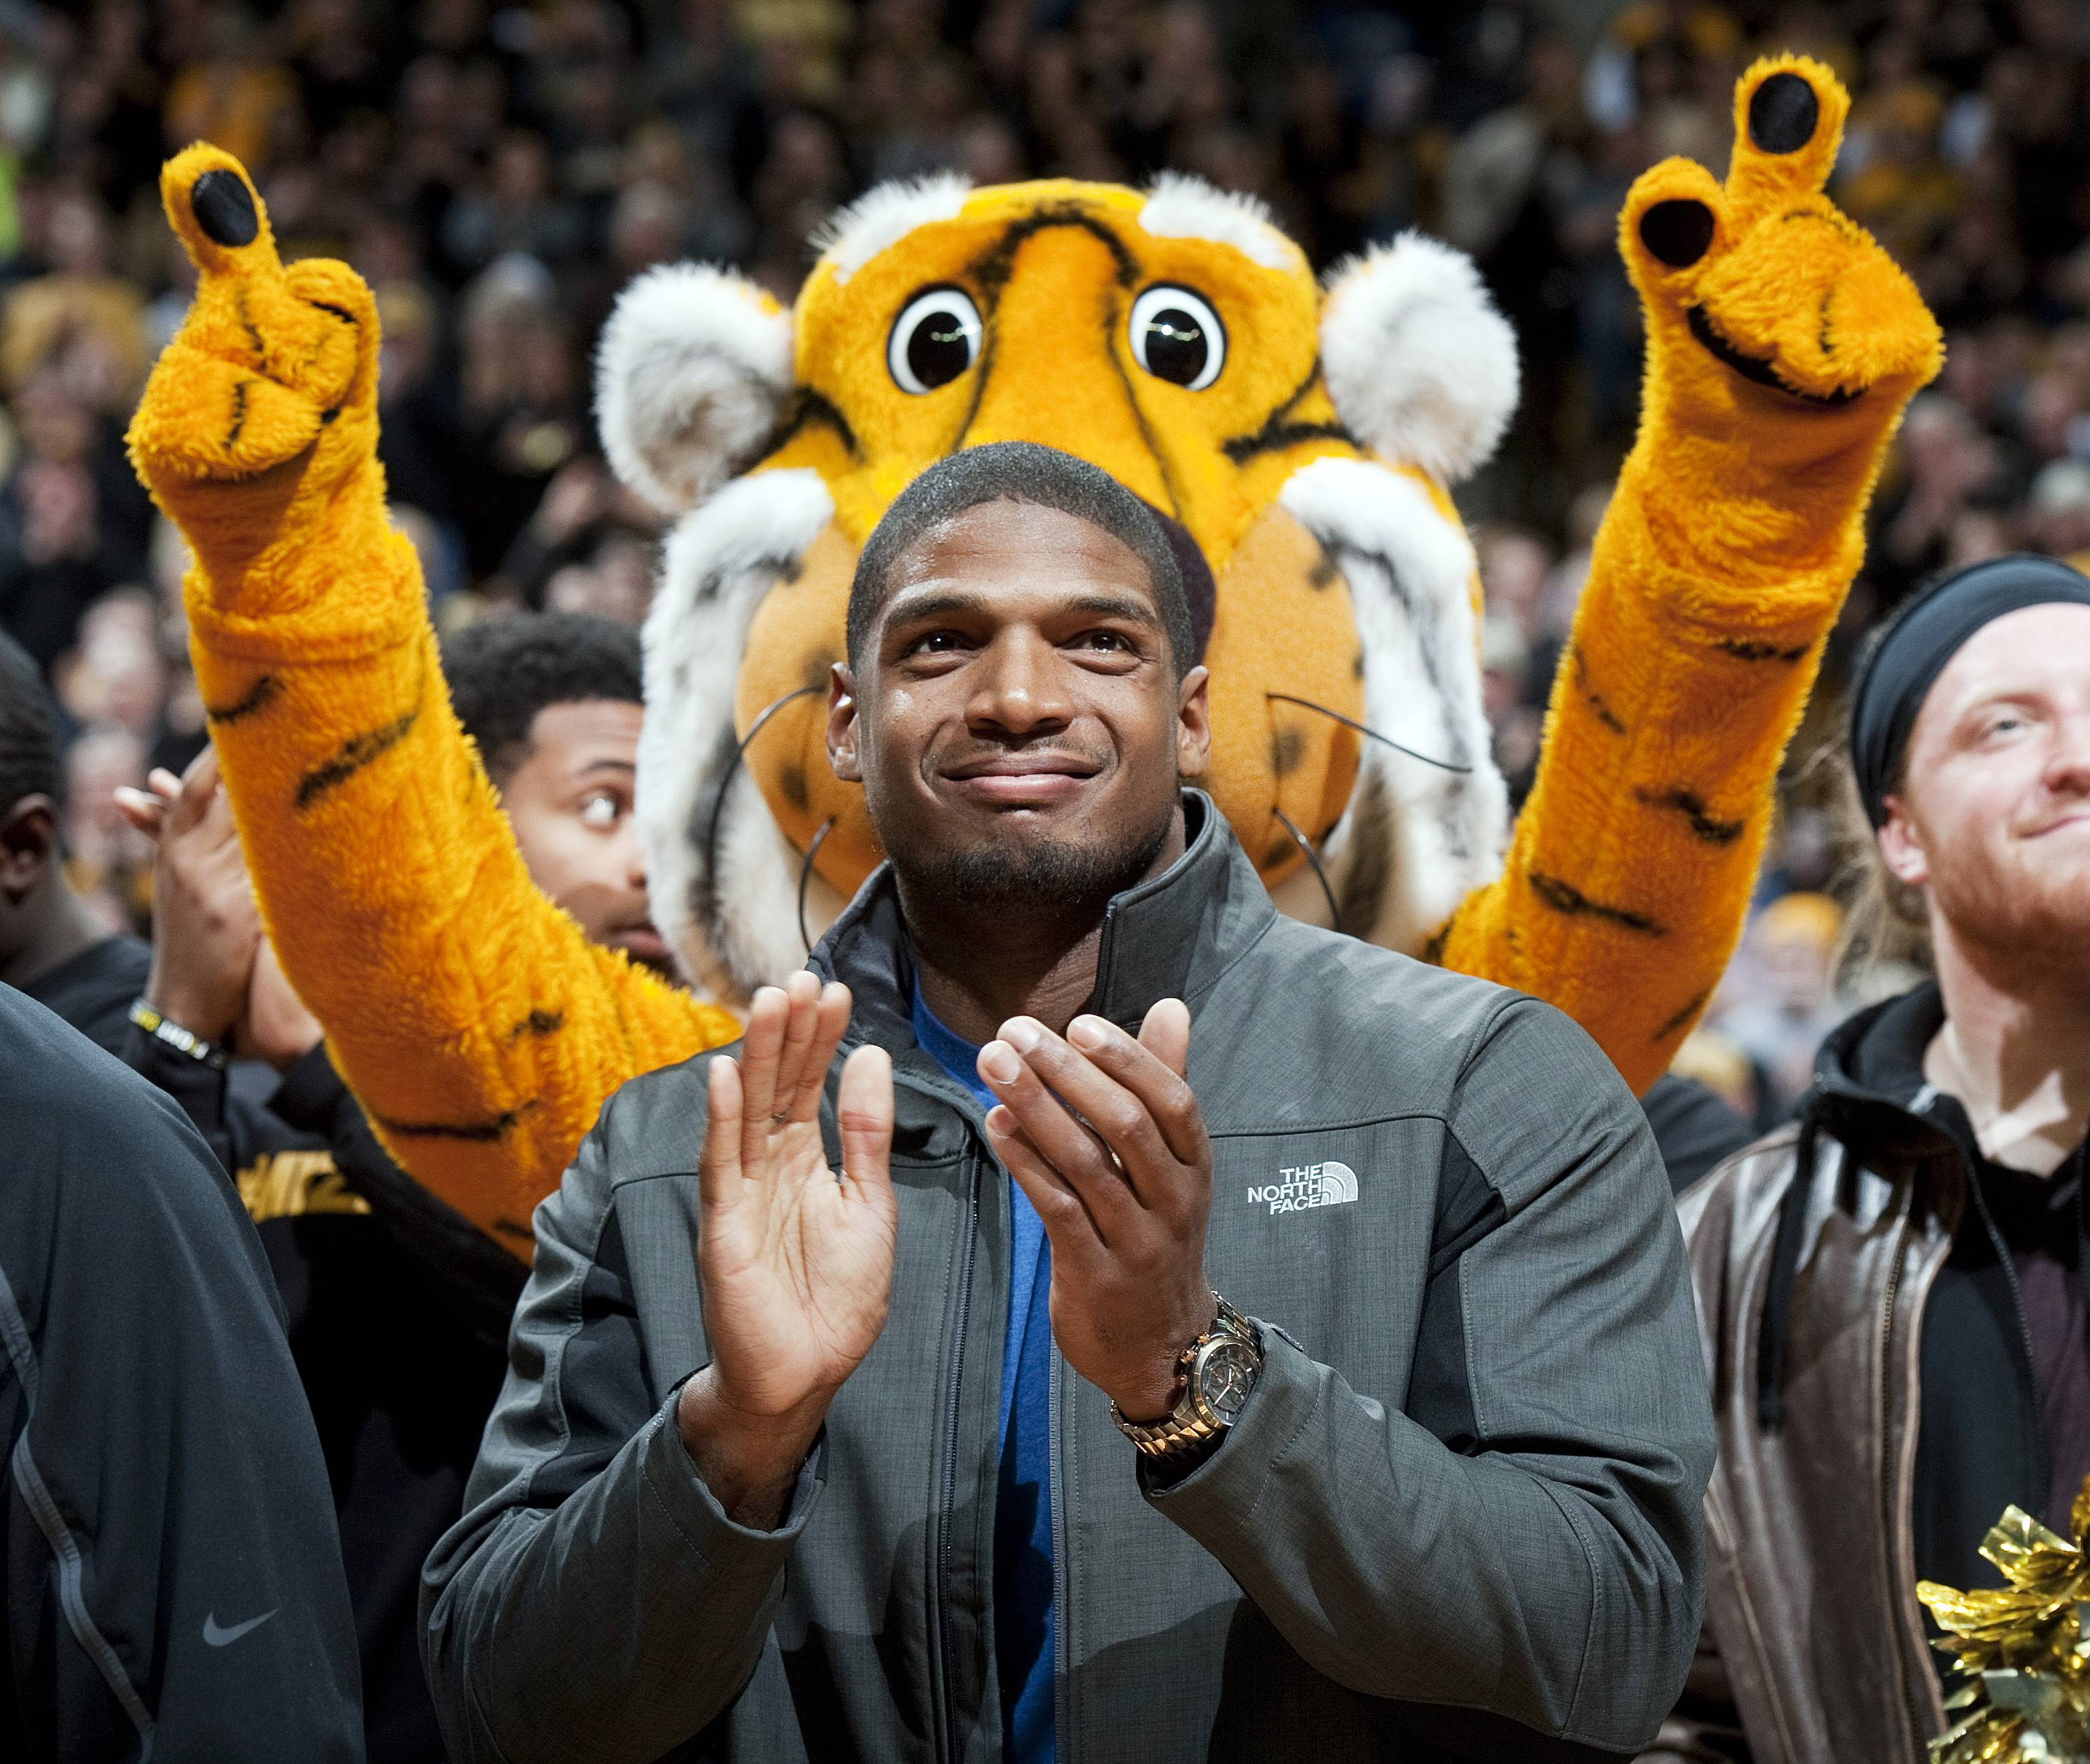 Mizzou star Michael Sam came out as gay in media interviews earlier this year. The St. Louis Rams drafted him with their seventh-round pick on Saturday.